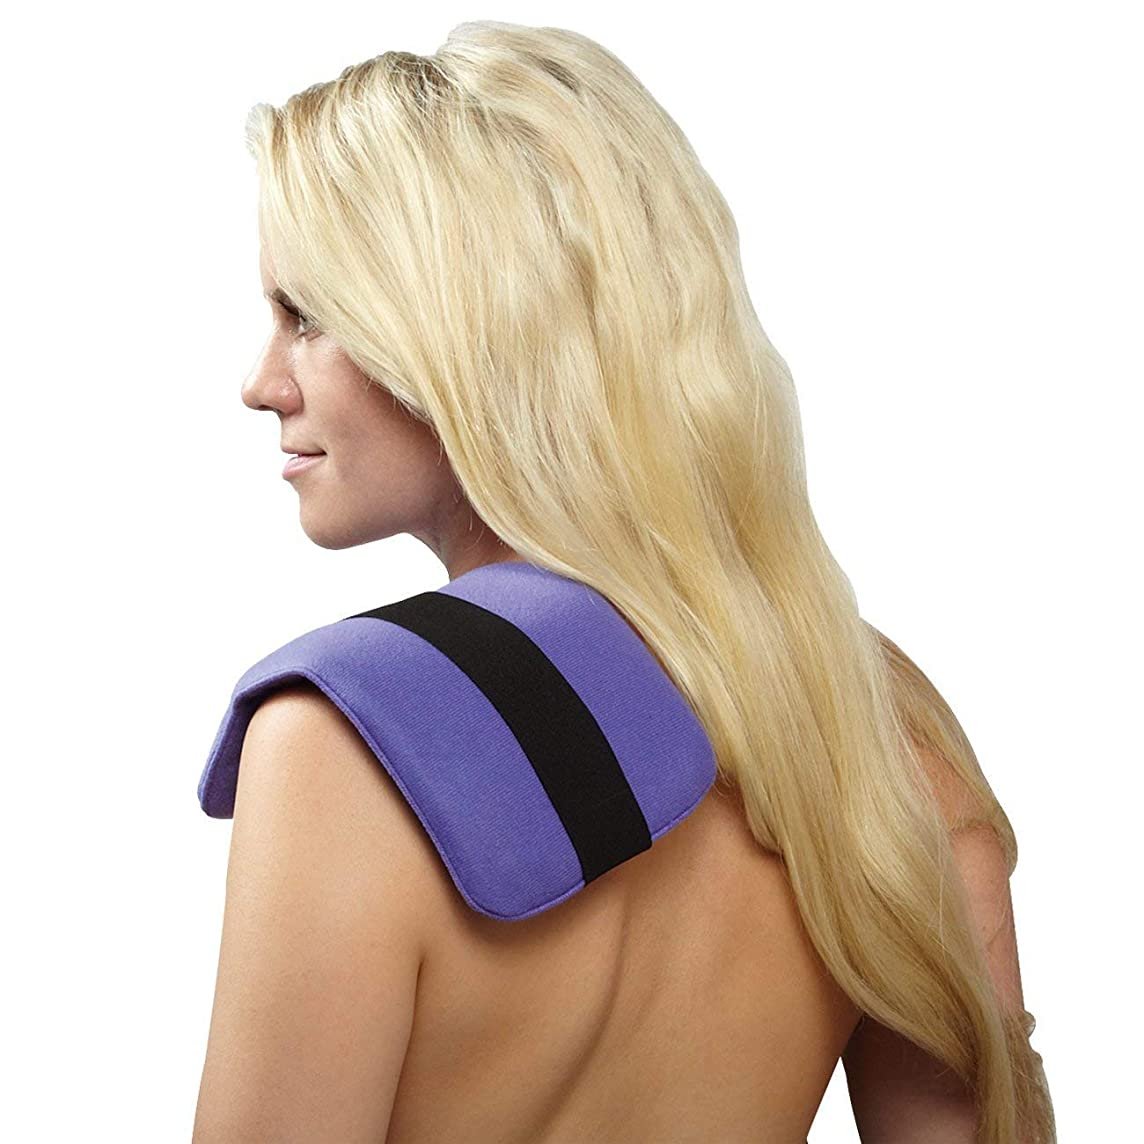 ThermiPaq Shoulder Ice Pack and Hot Cold Pack For Injuries - Elbow, Ankles, Back and Knee Ice Pack, Medium (6